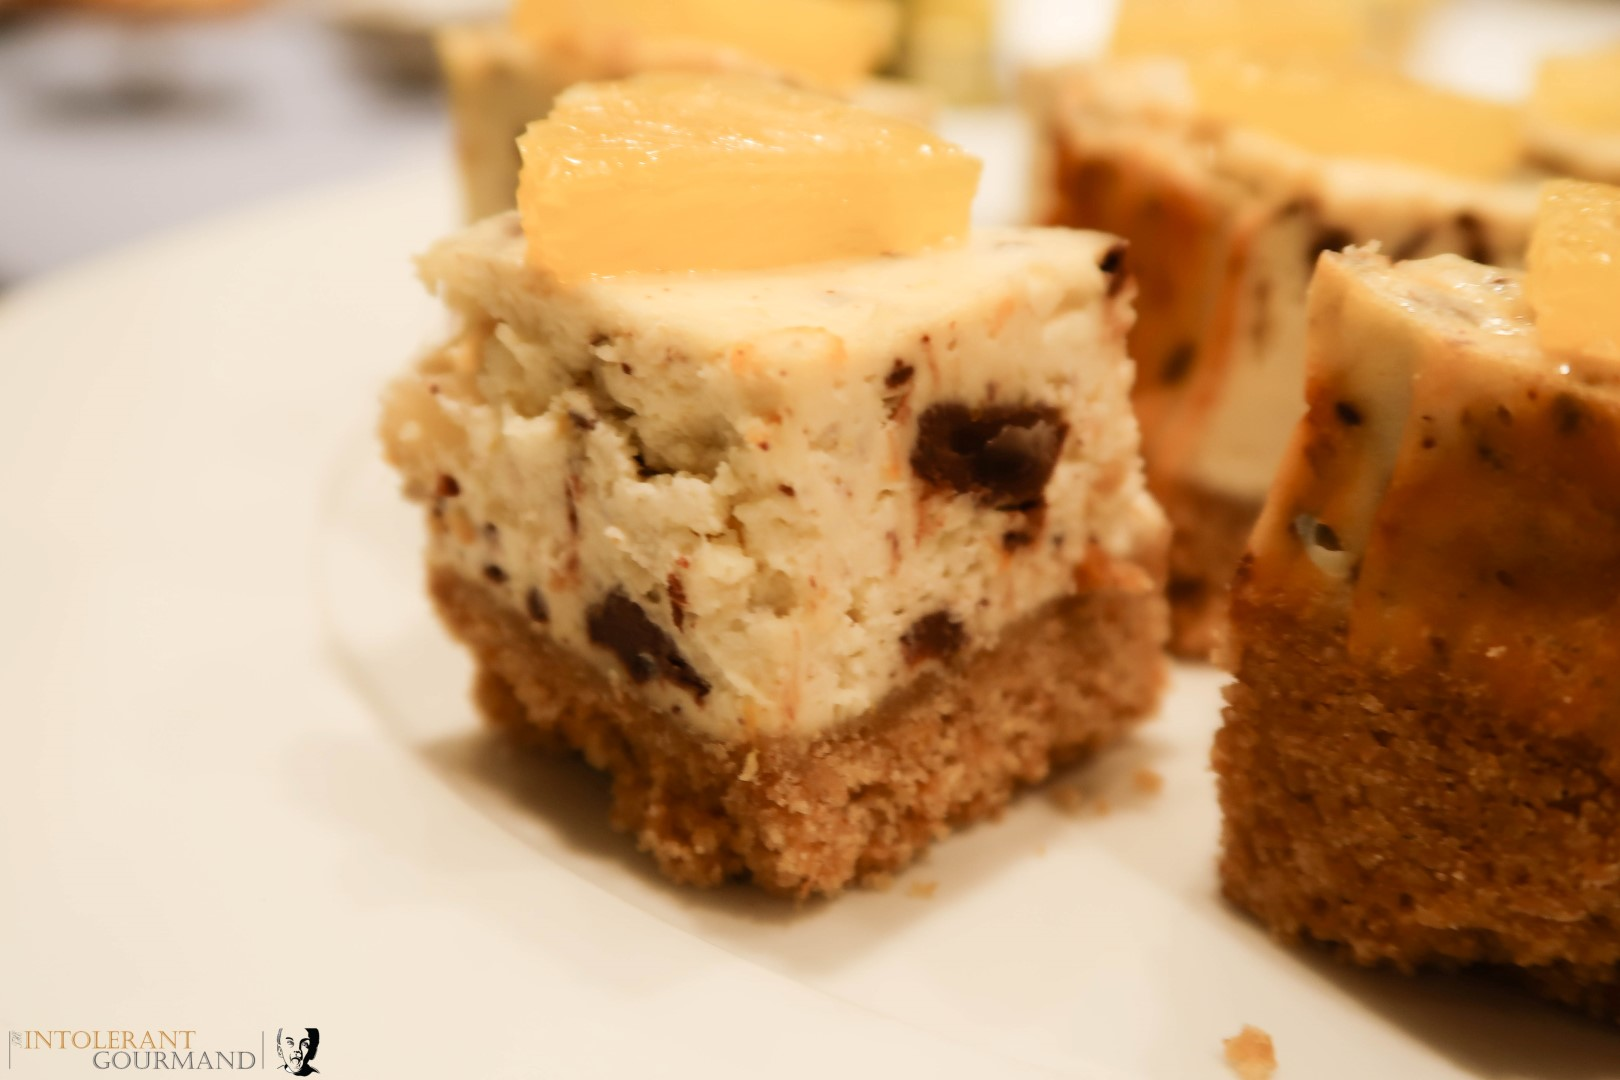 Splenda Sweet School - what's the difference between sugar and sweetener? Learn the small changes you can implement to create big differences, along with delicious recipes including this dairy-free, gluten-free and vegan chocolate, orange and ginger cheesecake all made using Splenda!